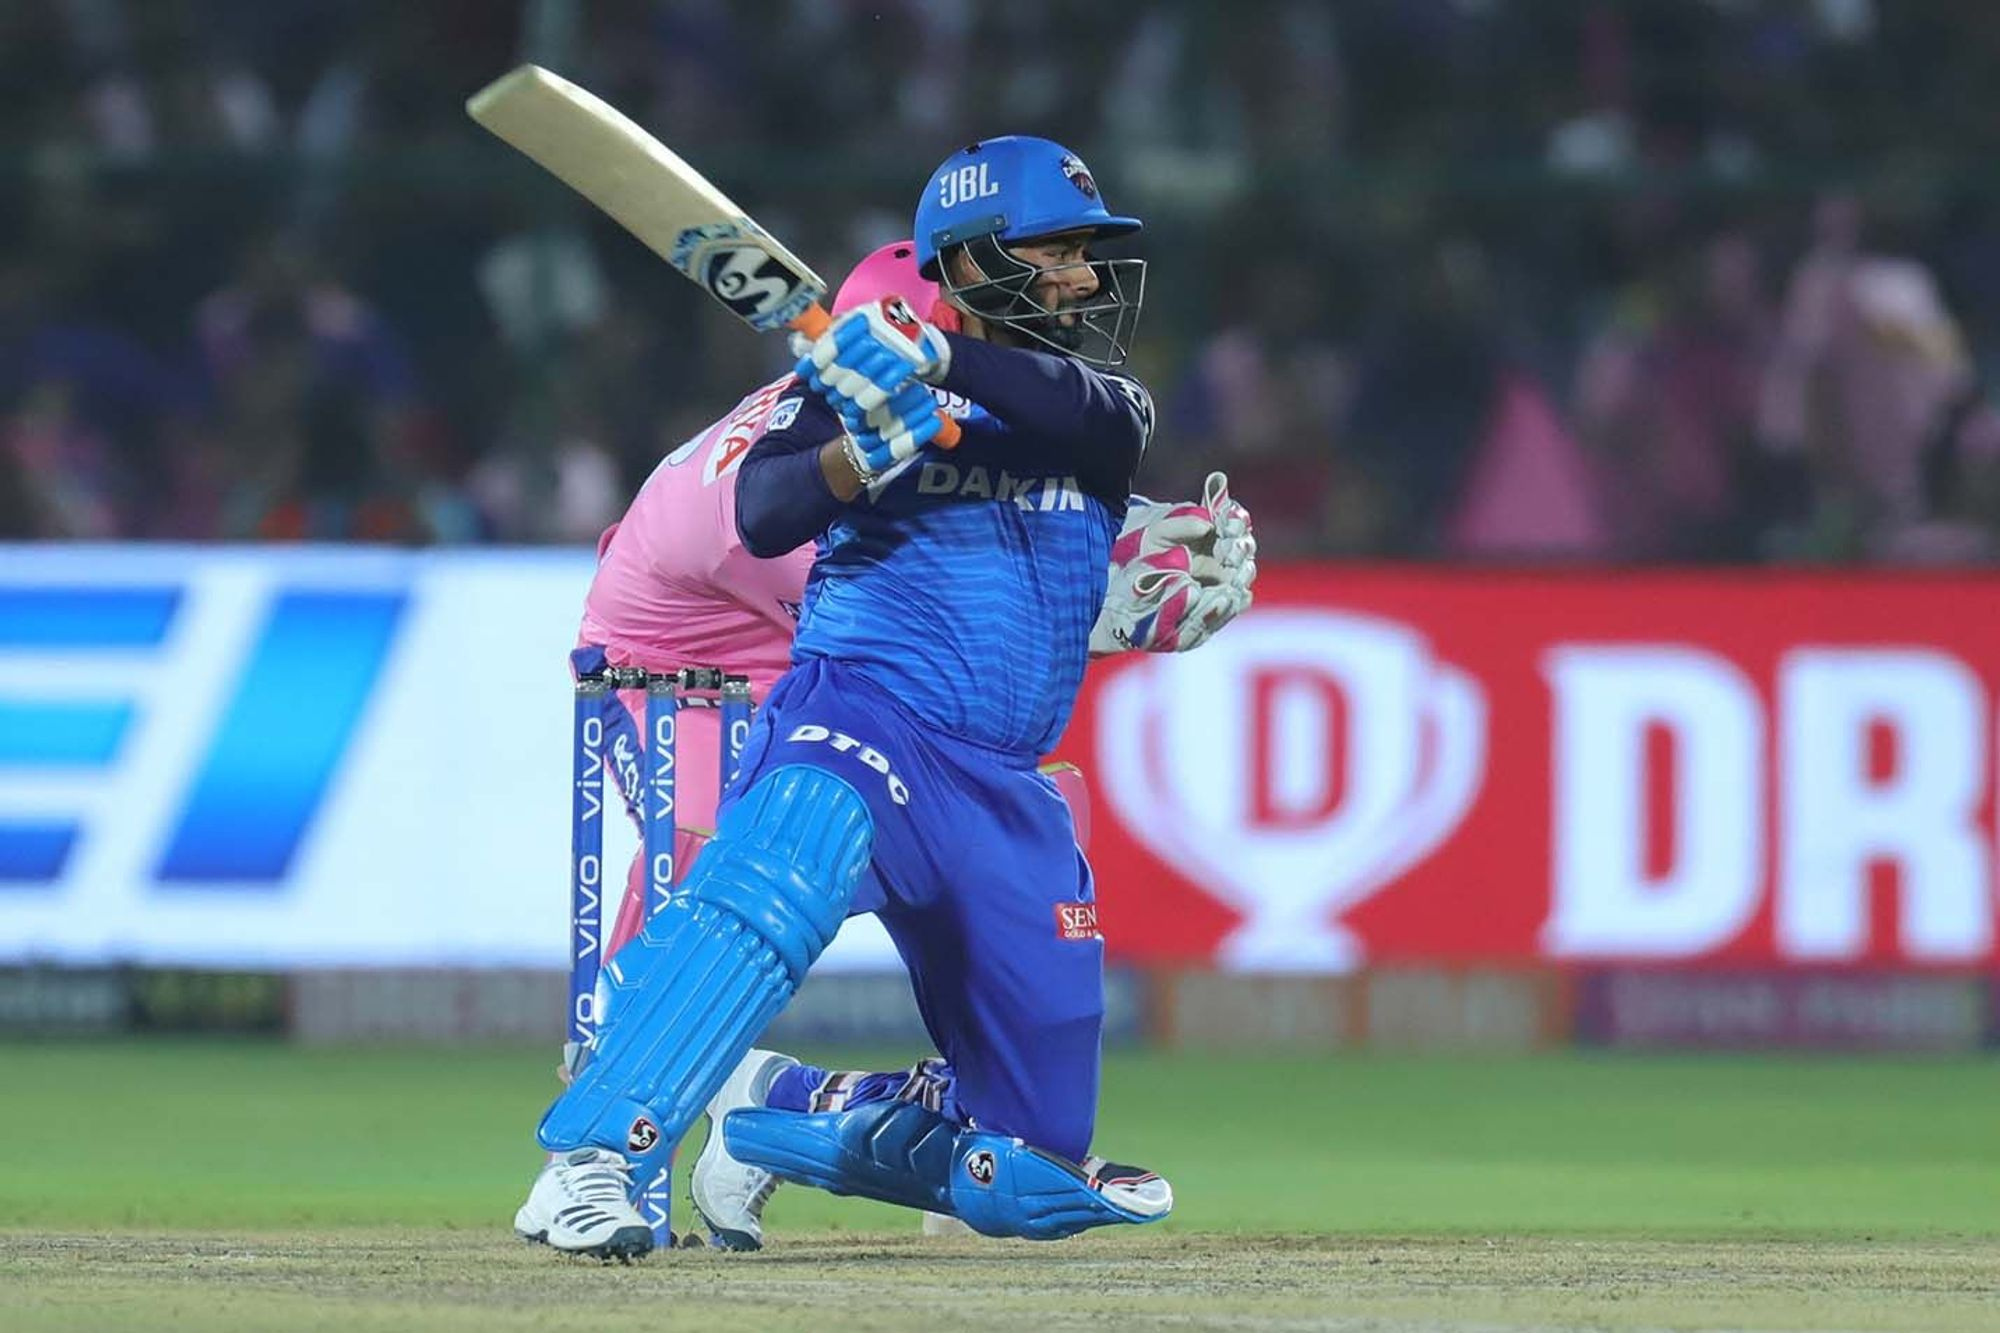 Battle of underdogs: Spin heavy DC take on KL Rahul's KXIP